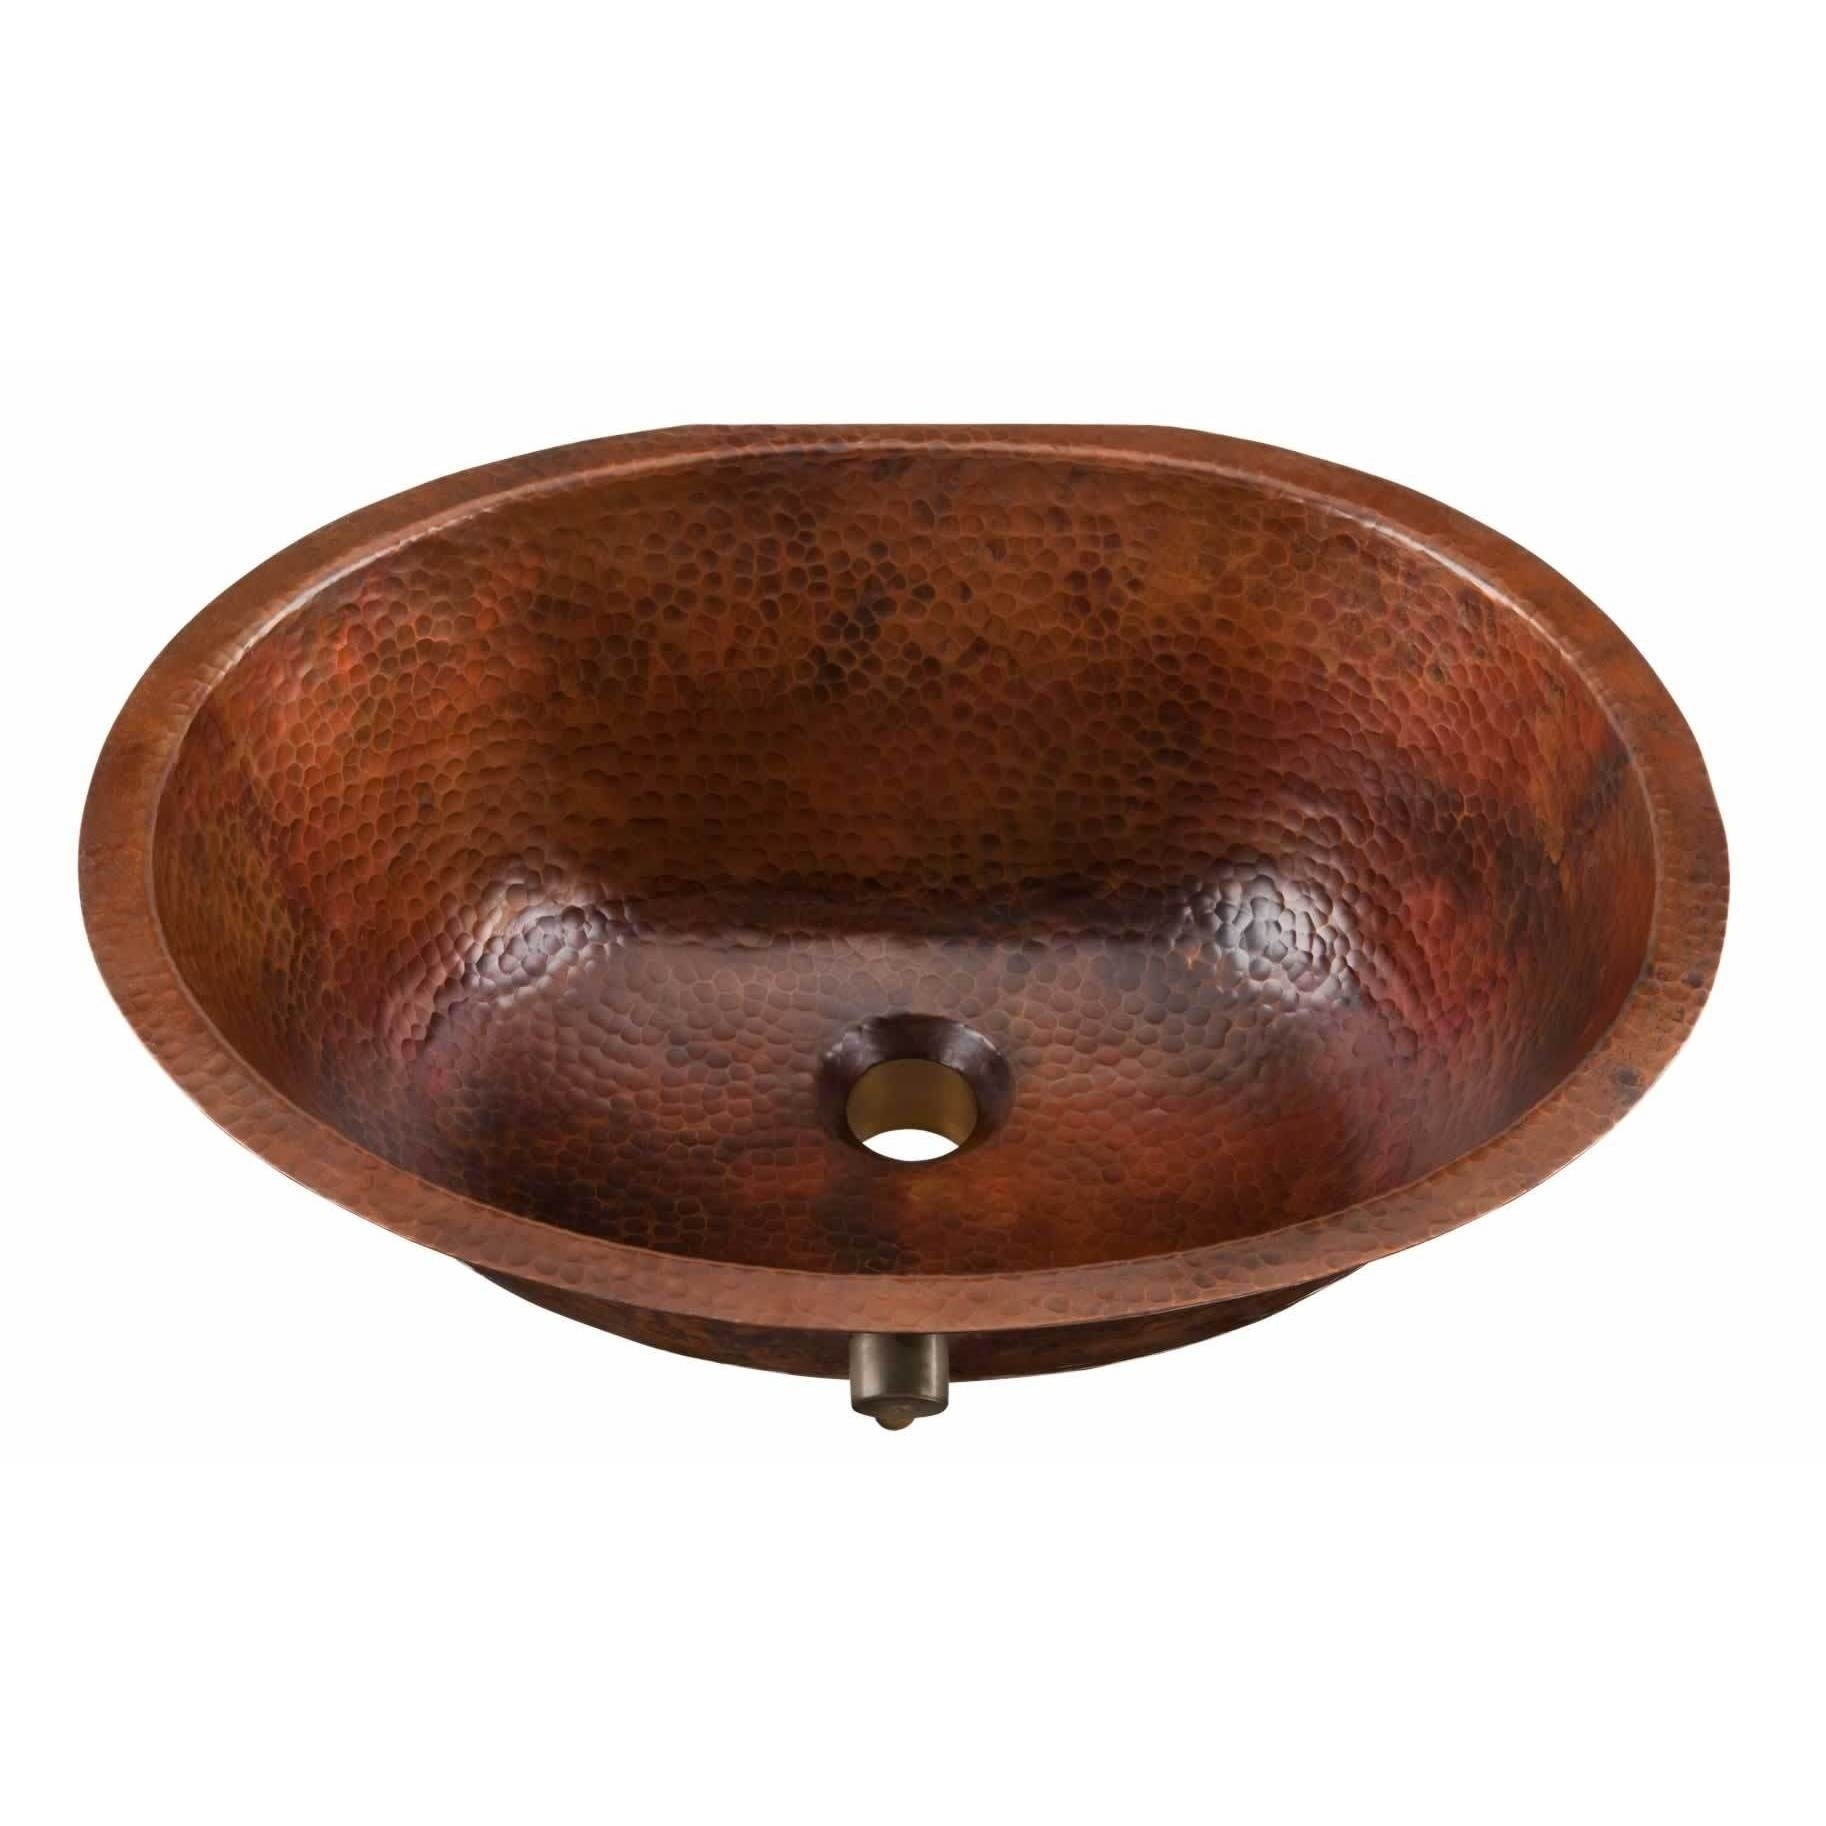 Sinkology Freud 19 25 Undermount Oval Copper Bath Sink With Overflow Free Shipping Today 10148775